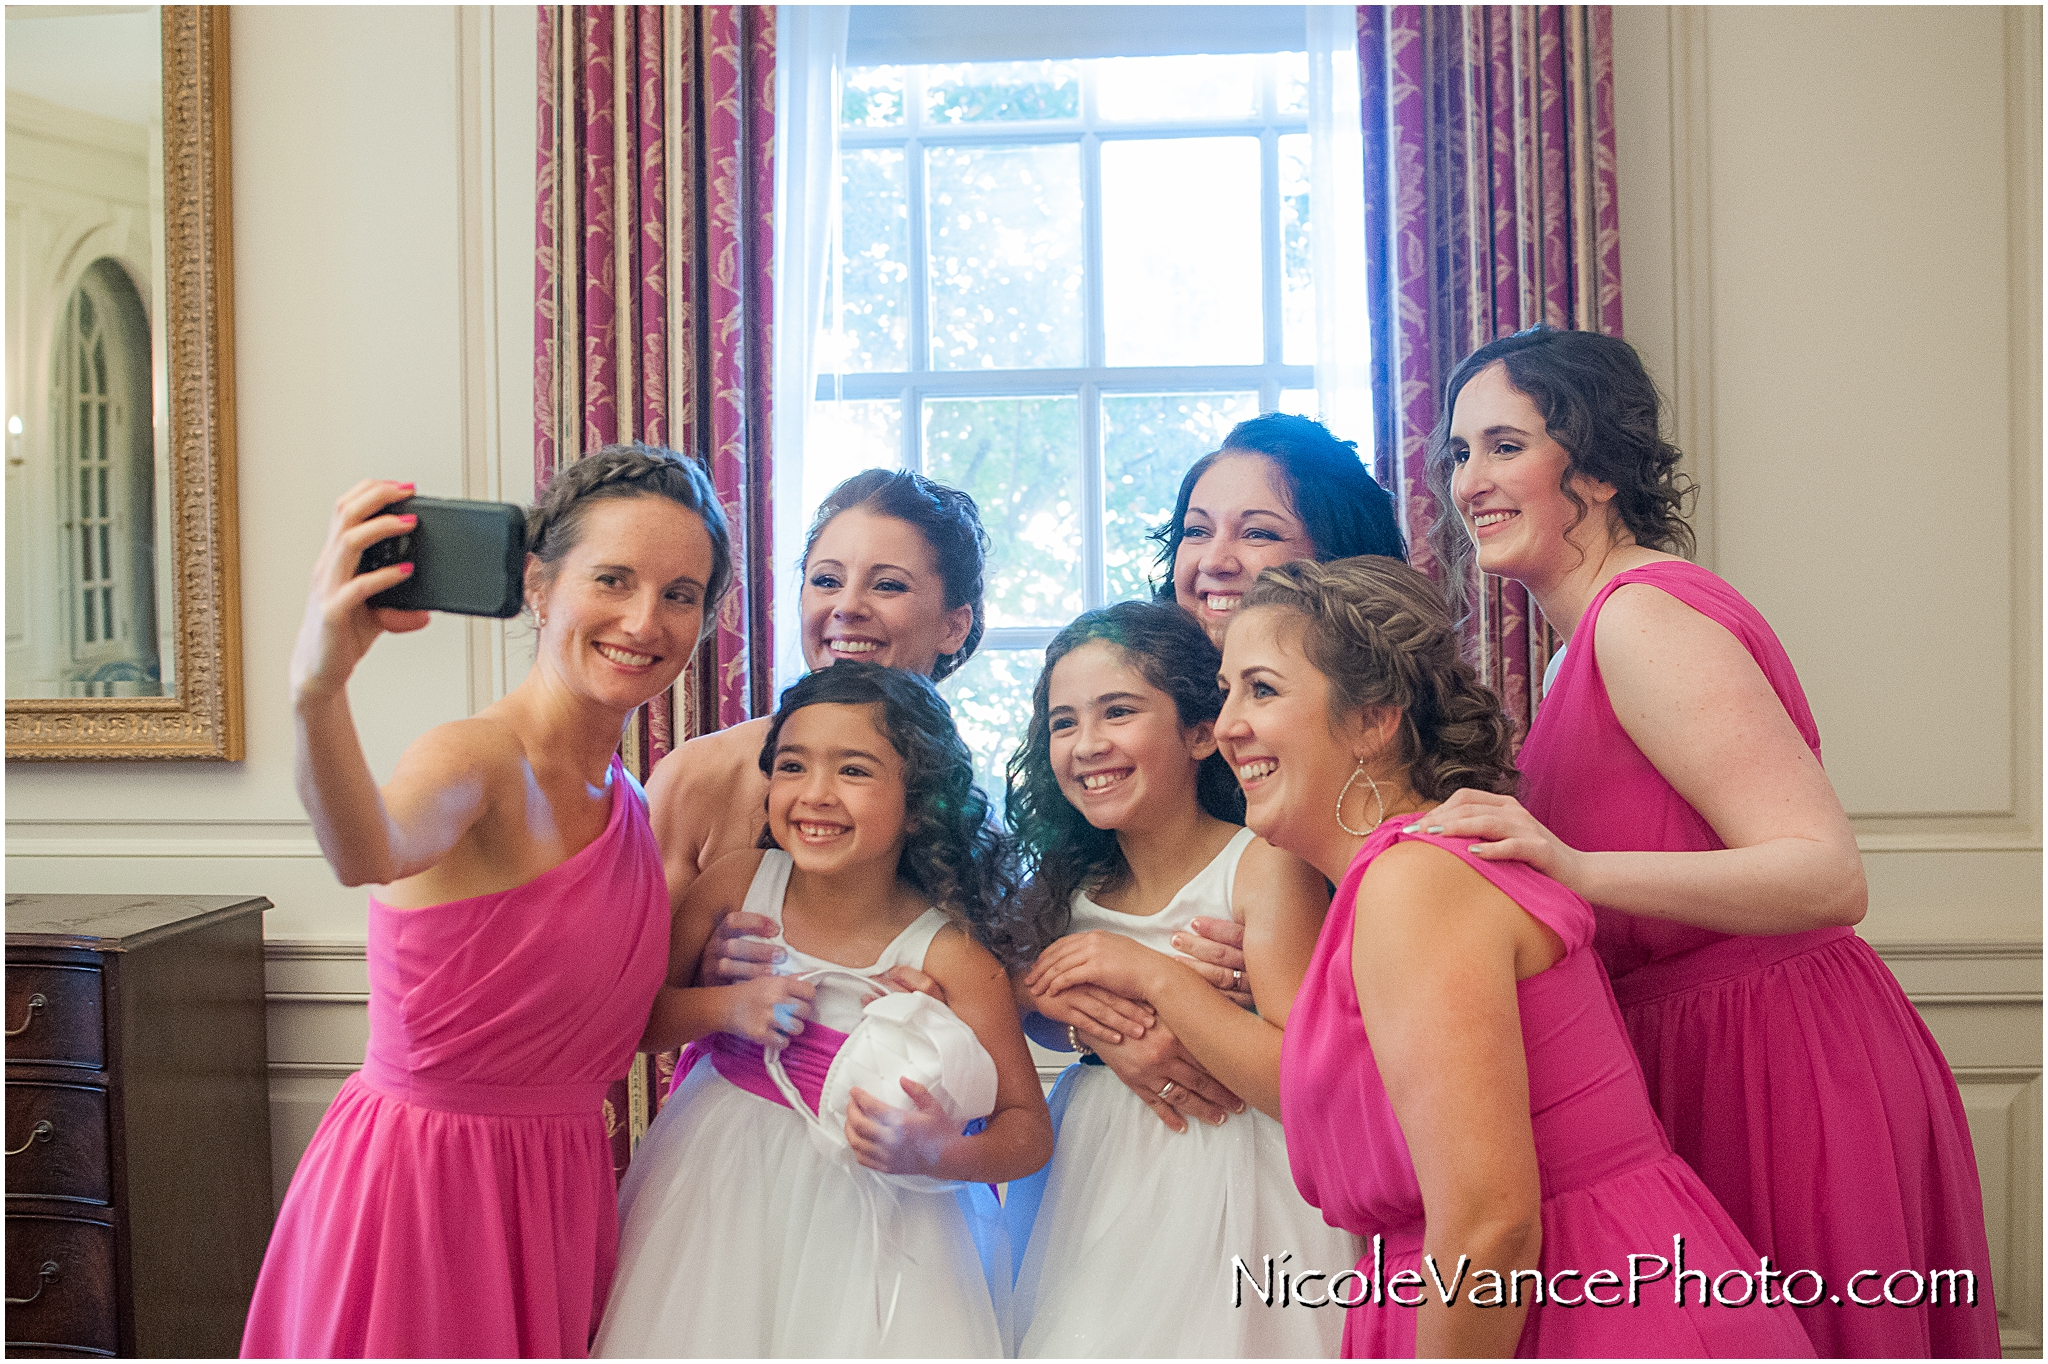 Members of the bridal party get together for a selfie in the conference room at Virginia Crossings.